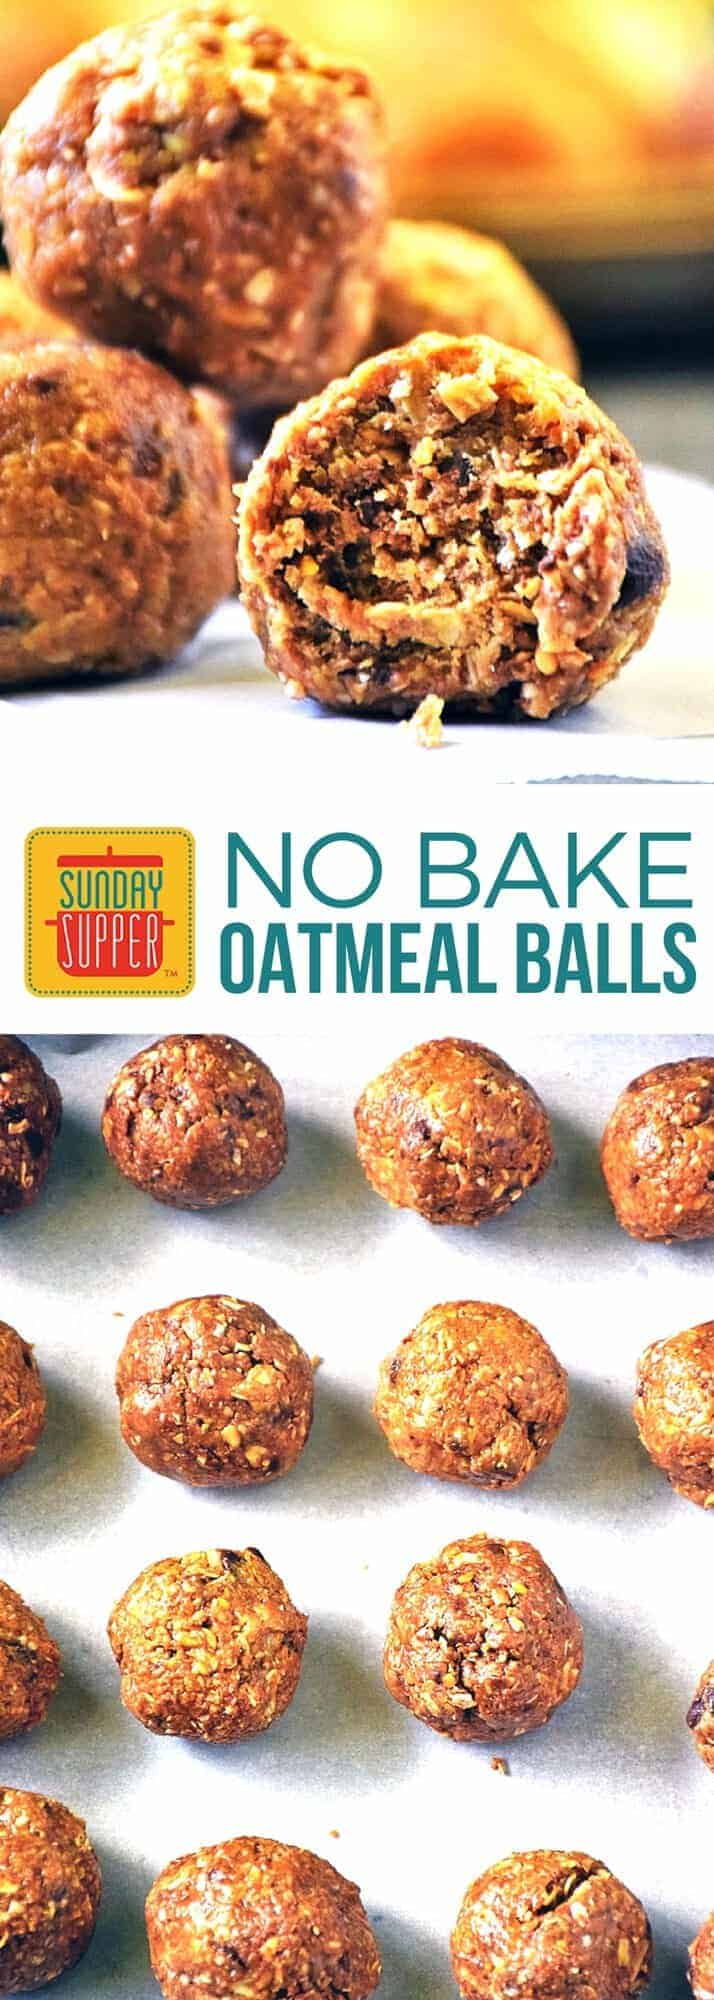 Little balls of heaven! No Bake Oatmeal Balls loaded with protein & other good-for-you stuff are one of our Best After School Snacks! Your kids will ask for these again and again never knowing how healthy they are. Full of flax seed, oats, peanut butter, honey, & a little bit of chocolate chips, these no bake oatmeal balls make the perfect anytime snack!